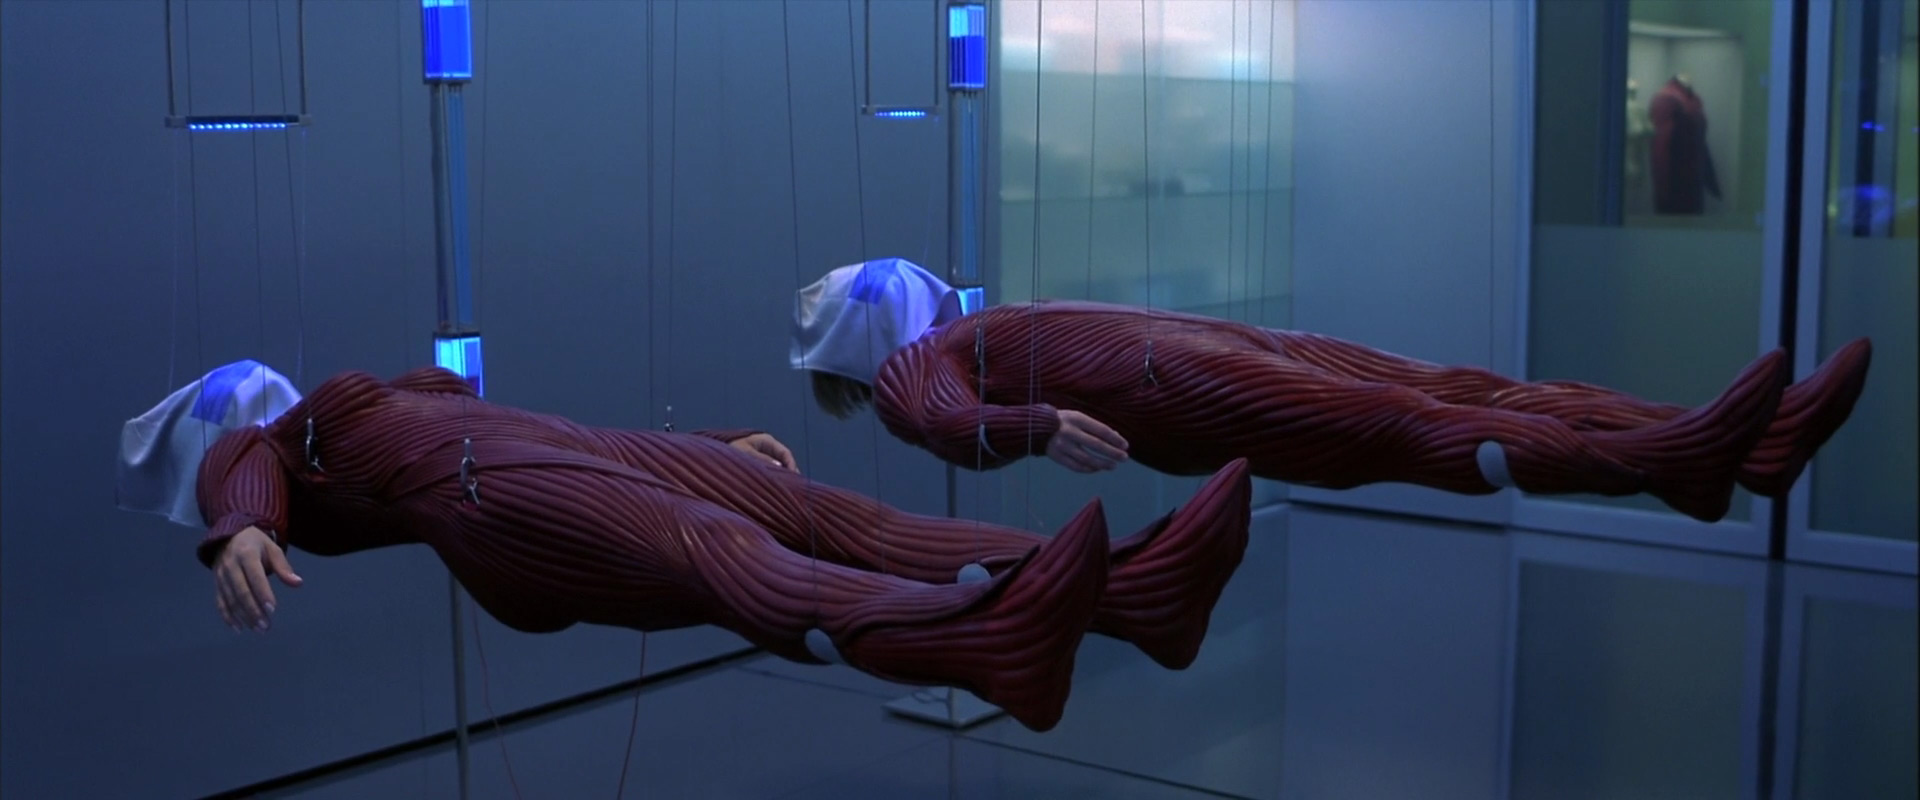 The device allowing people to enter the dreams in The Cell (2000)